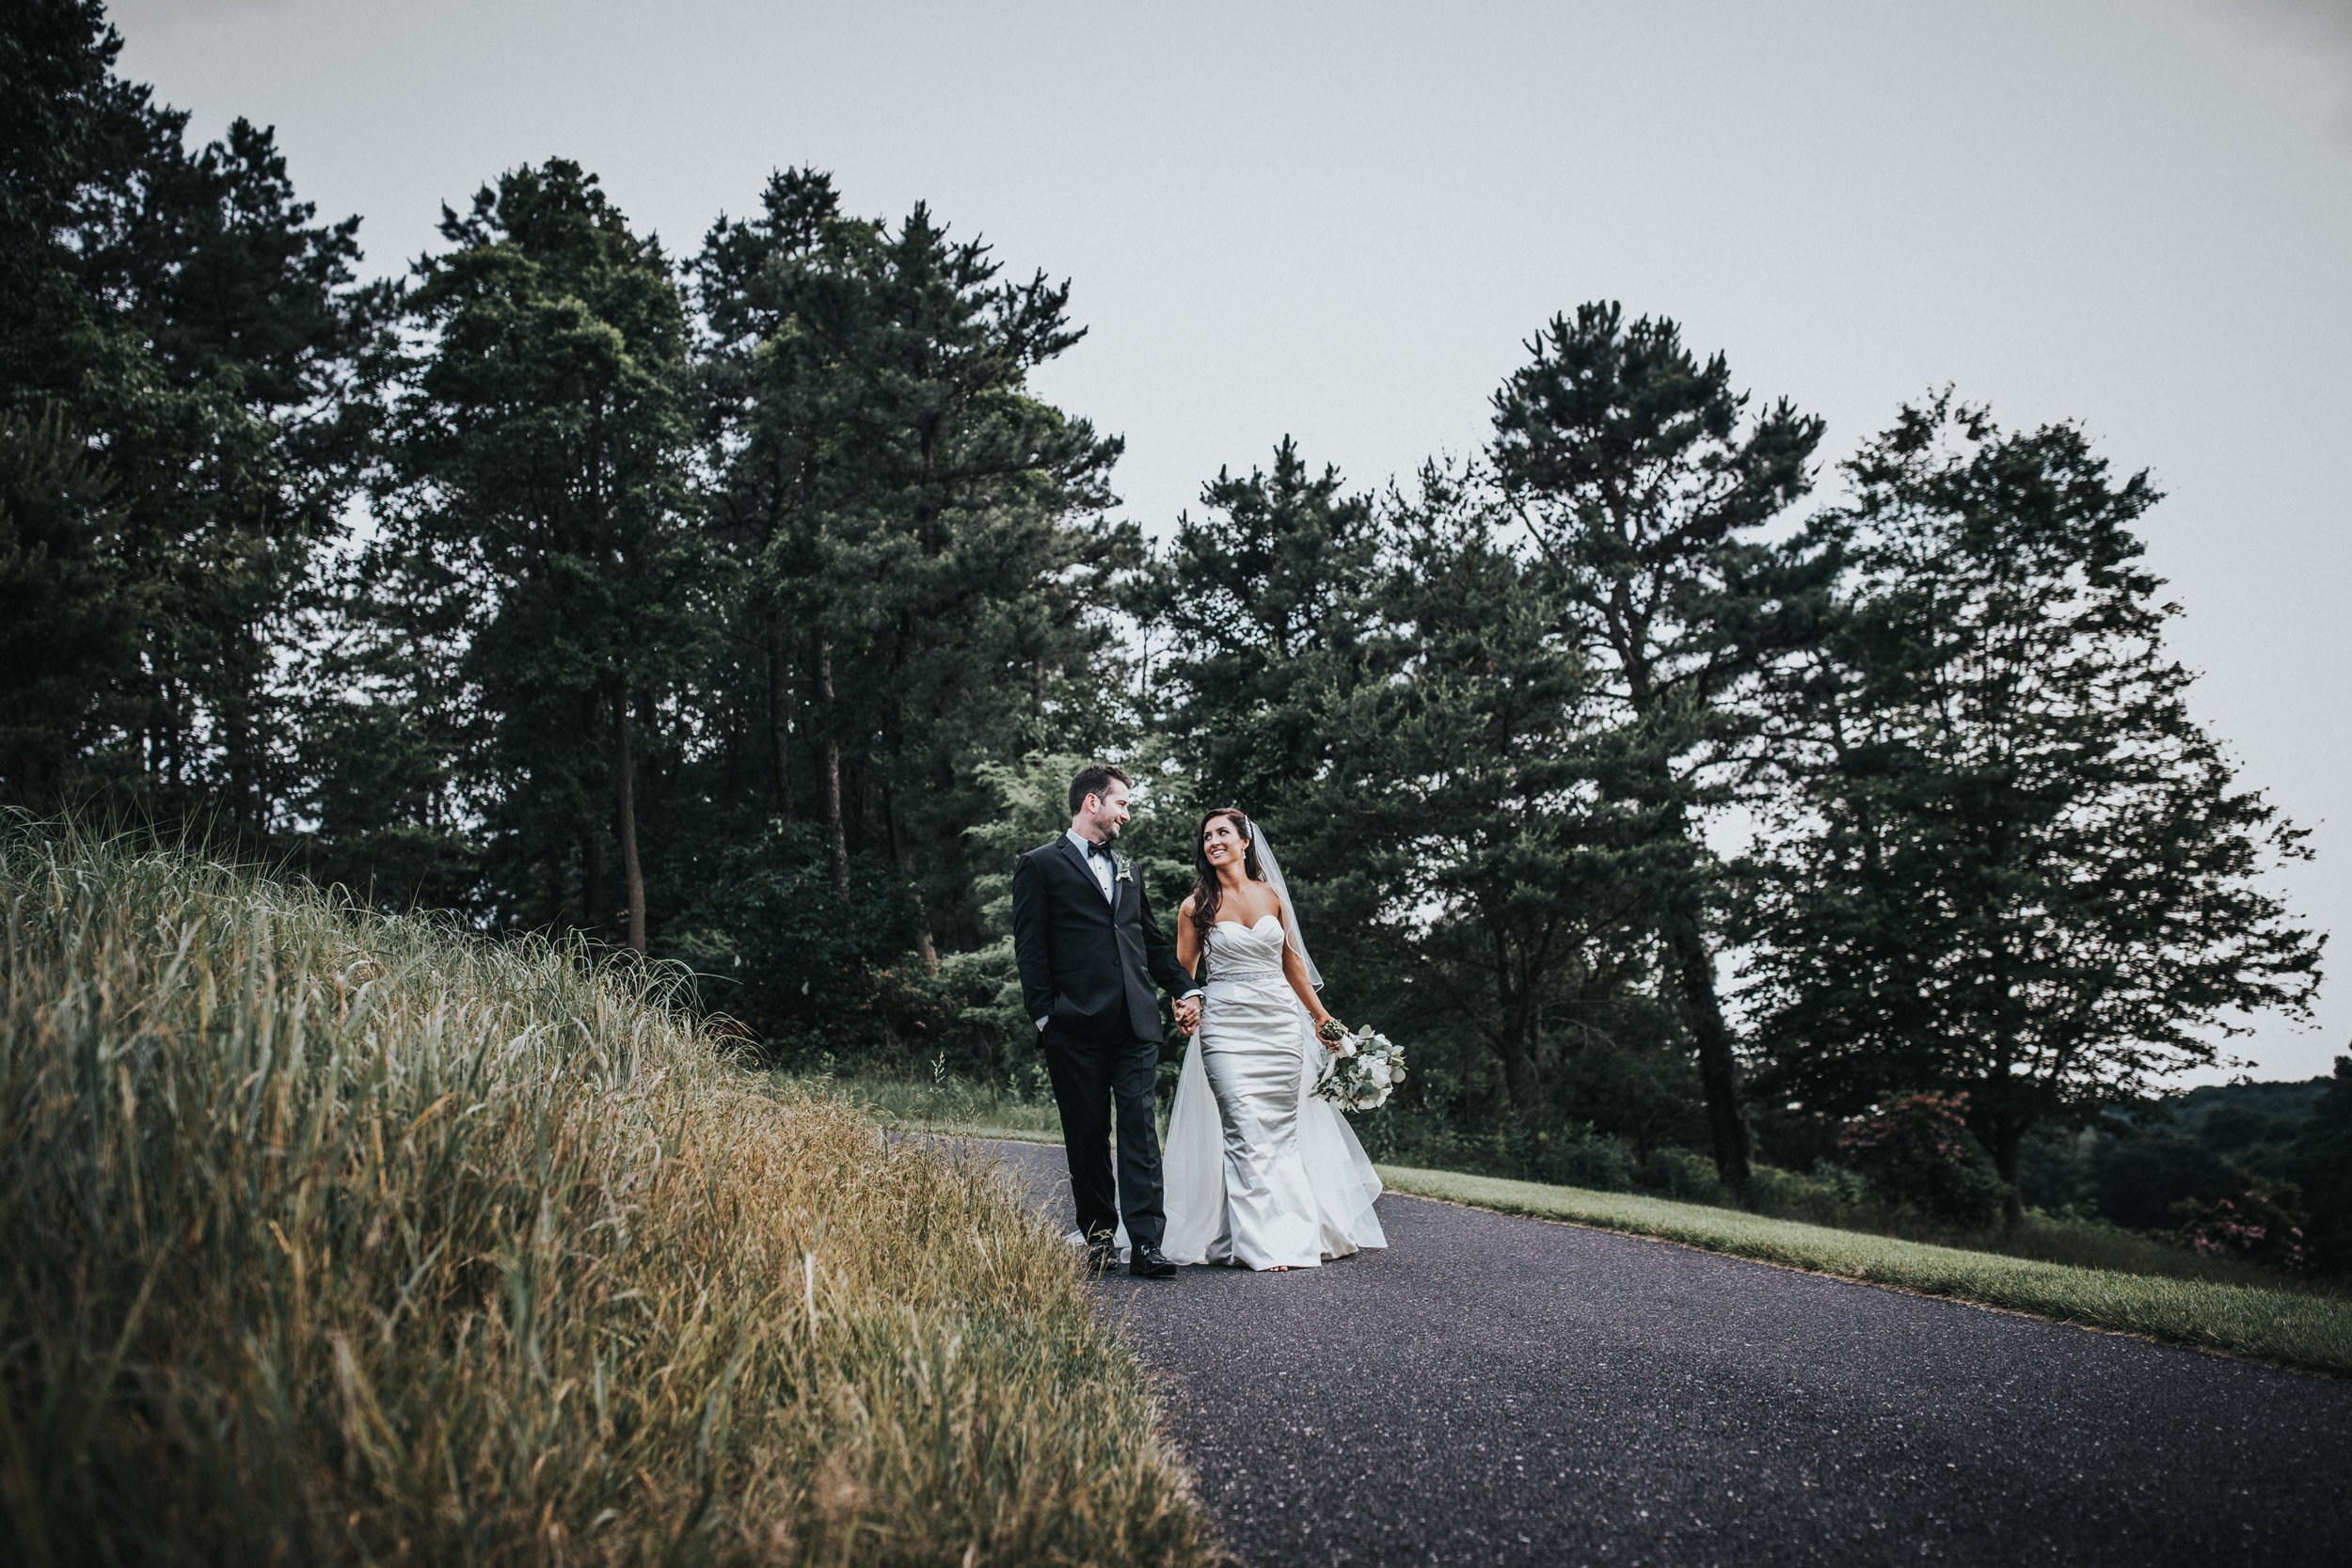 New-Jersey-Wedding-Photographer-JennaLynnPhotography-Trump-National-Golf-Club-Philadelphia-ErikaChris-Bride&Groom-2.jpg